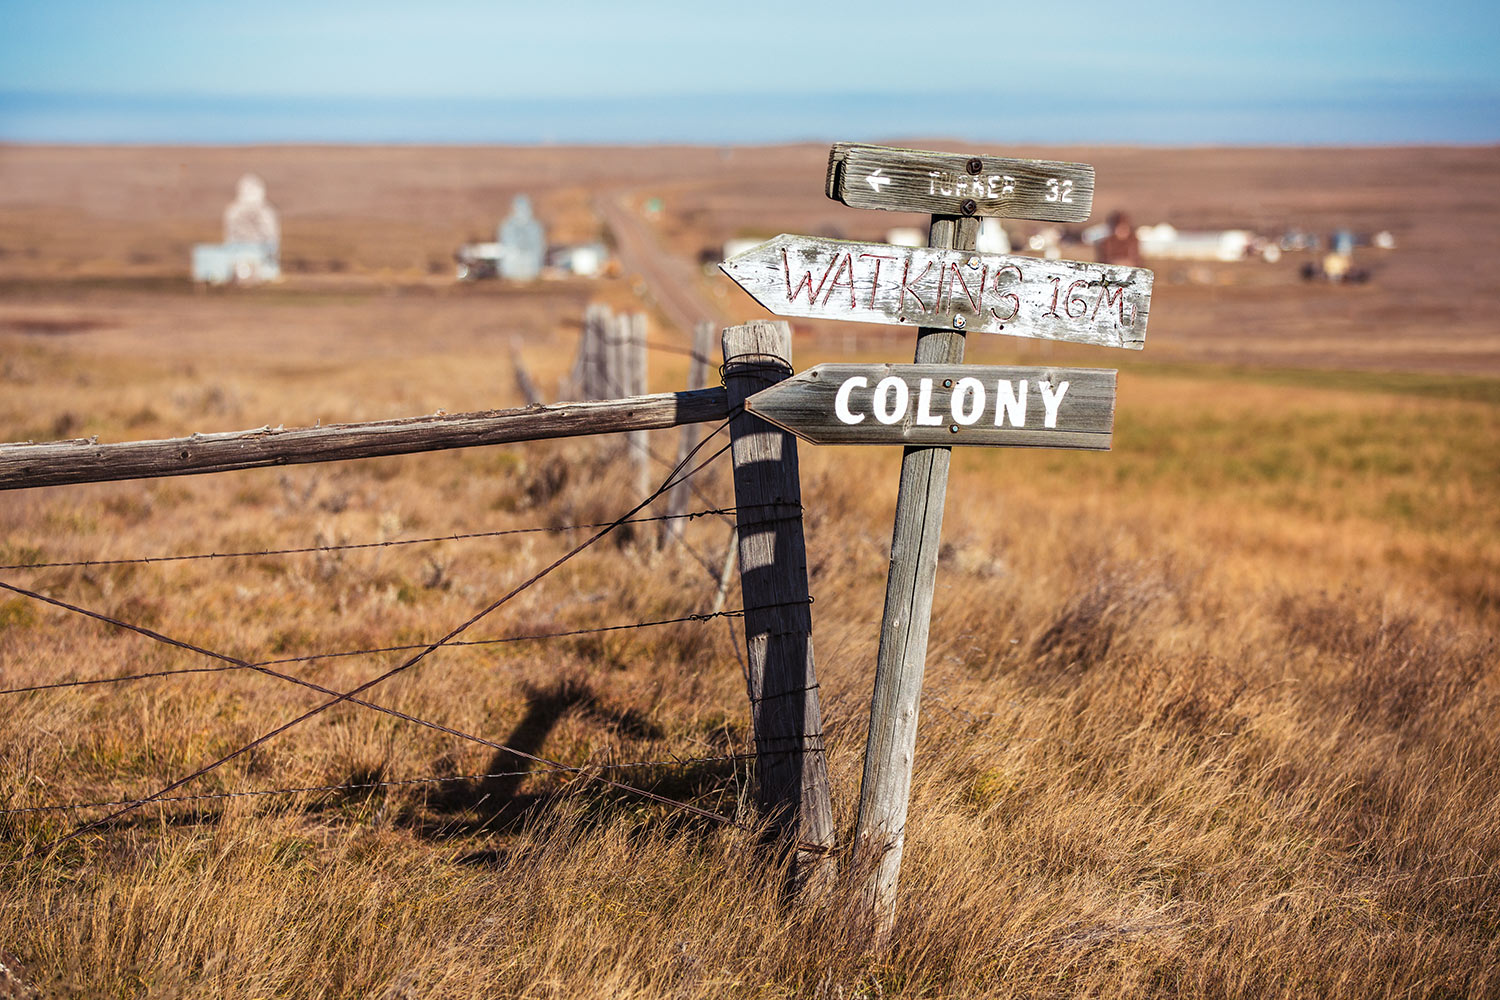 An old sign post stands alone on the quiet plains outside of Loring, Montana pointing the way to Turner, Watkins, and the Loring Hutterite Colony.   → Buy a Print